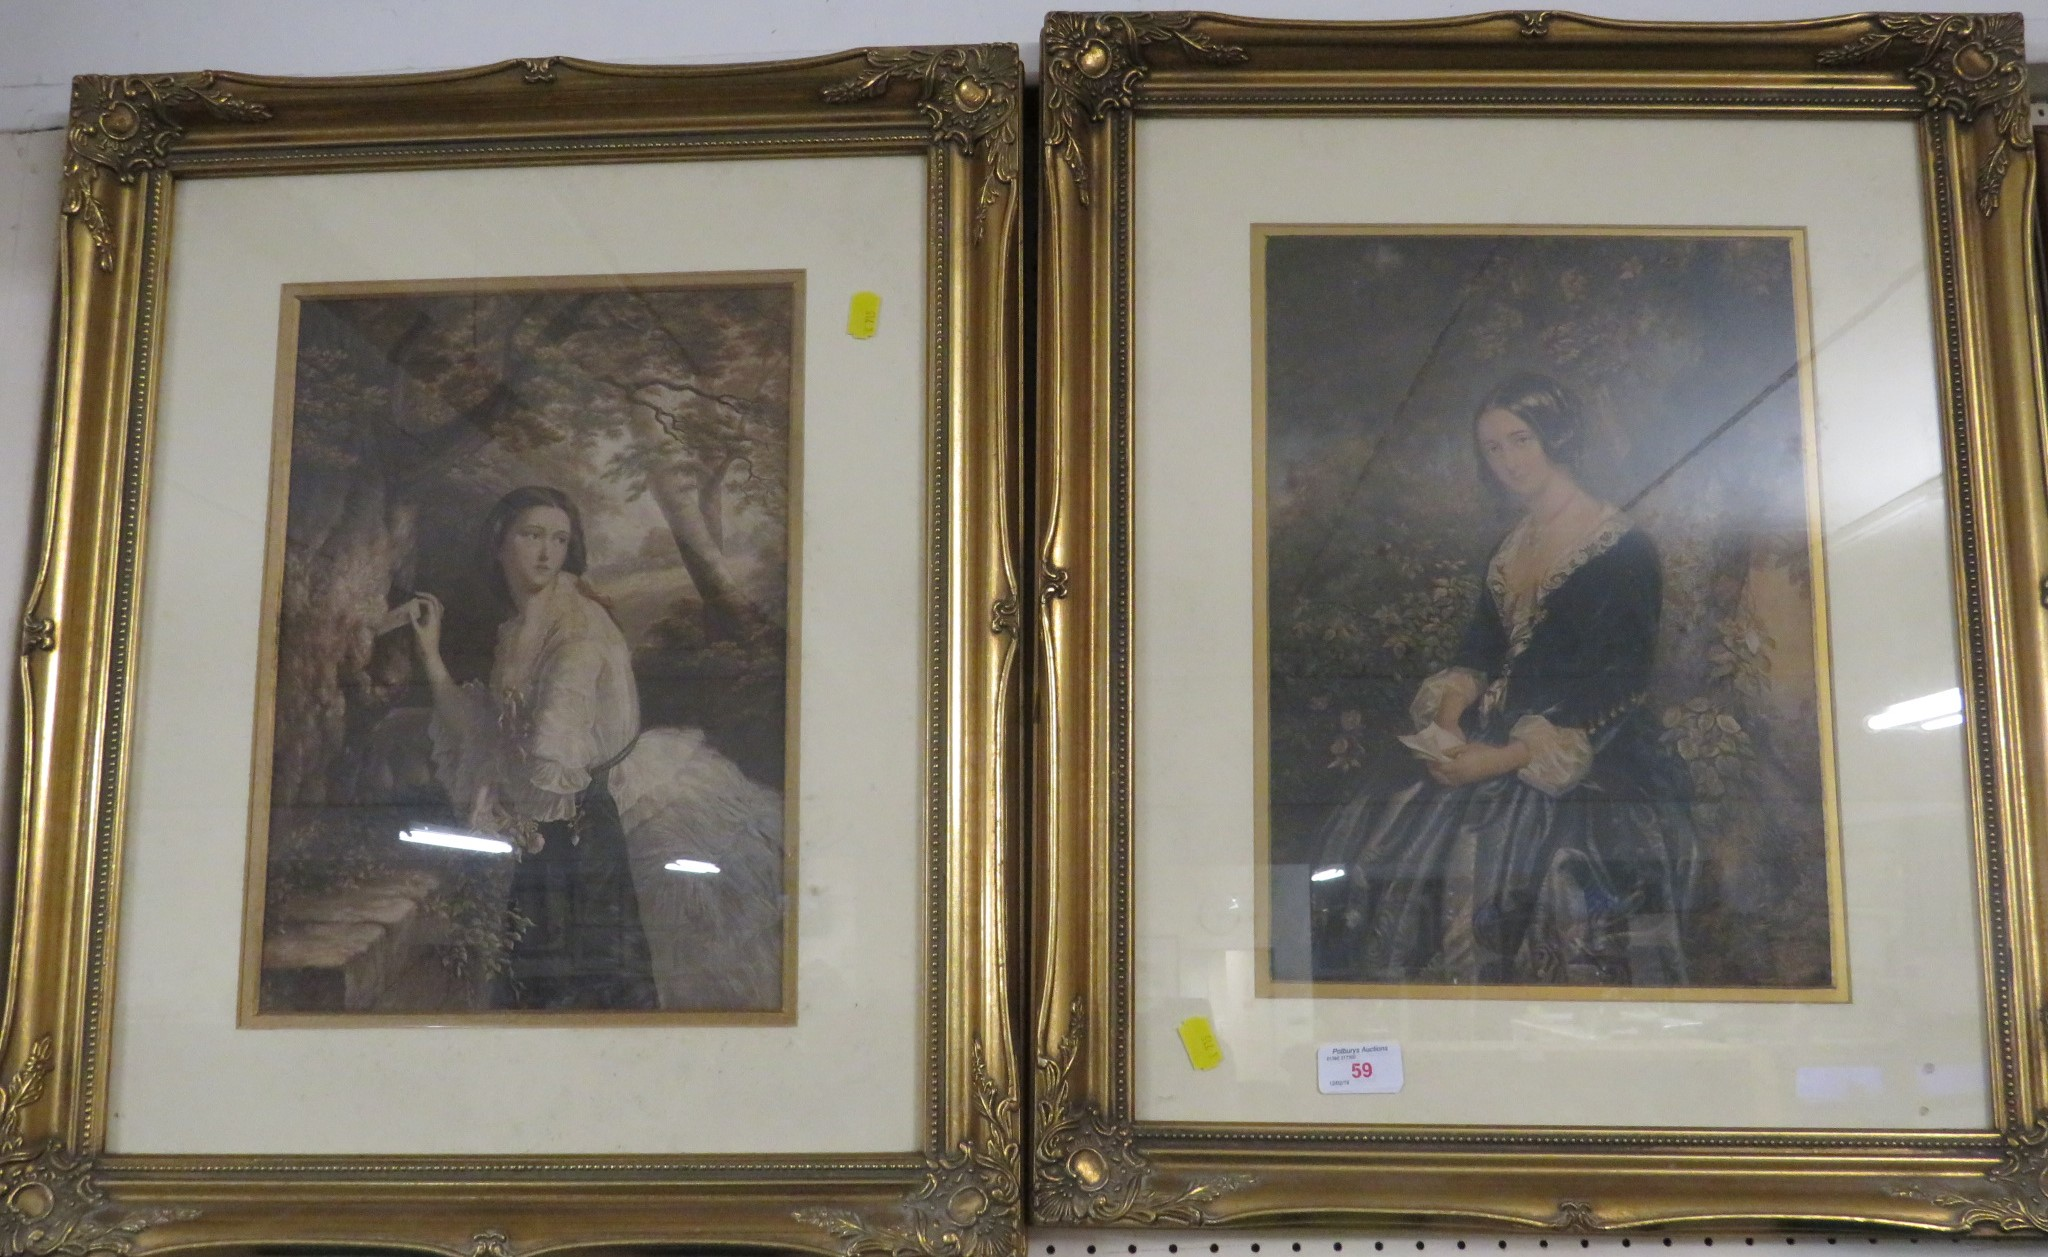 Lot 59 - TWO FRAMED AND MOUNTED PRINTS OF LADIES IN PERIOD COSTUMES